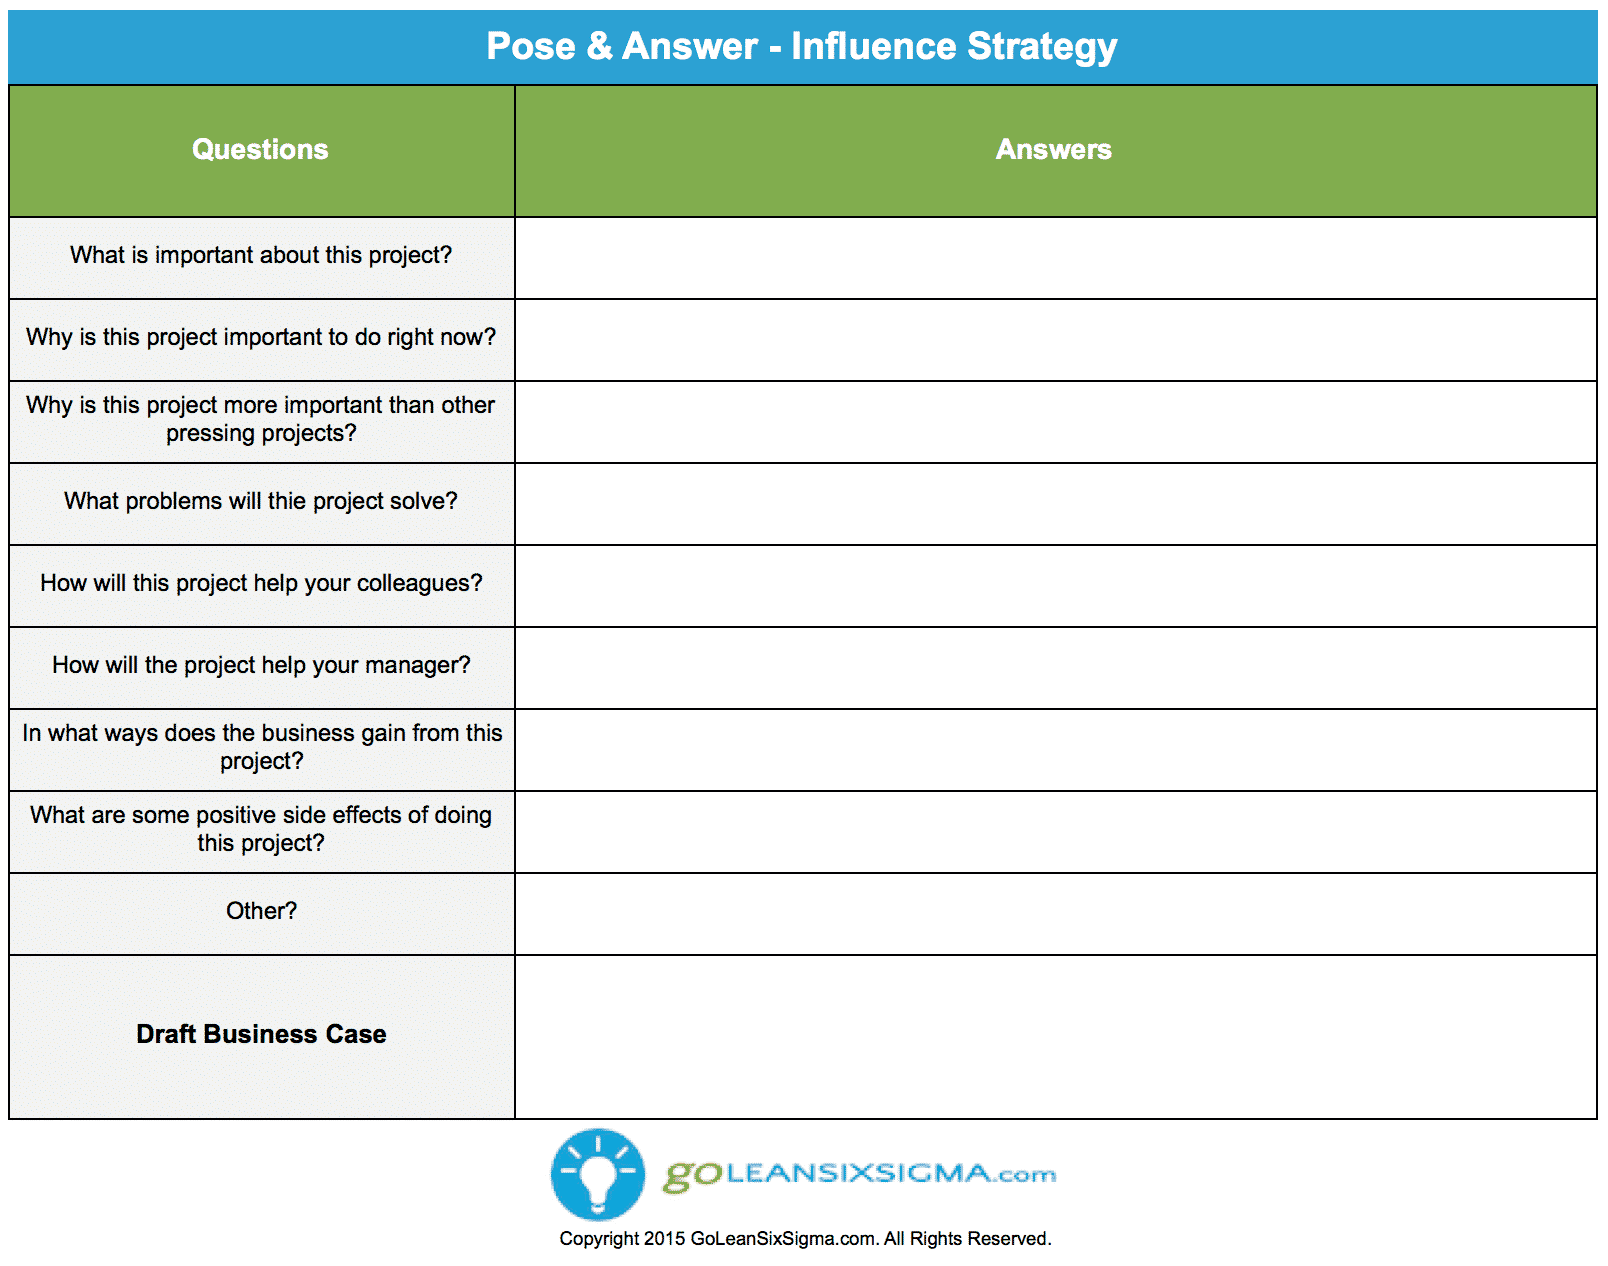 Pose & Answer – Influence Strategy – GoLeanSixSigma.com